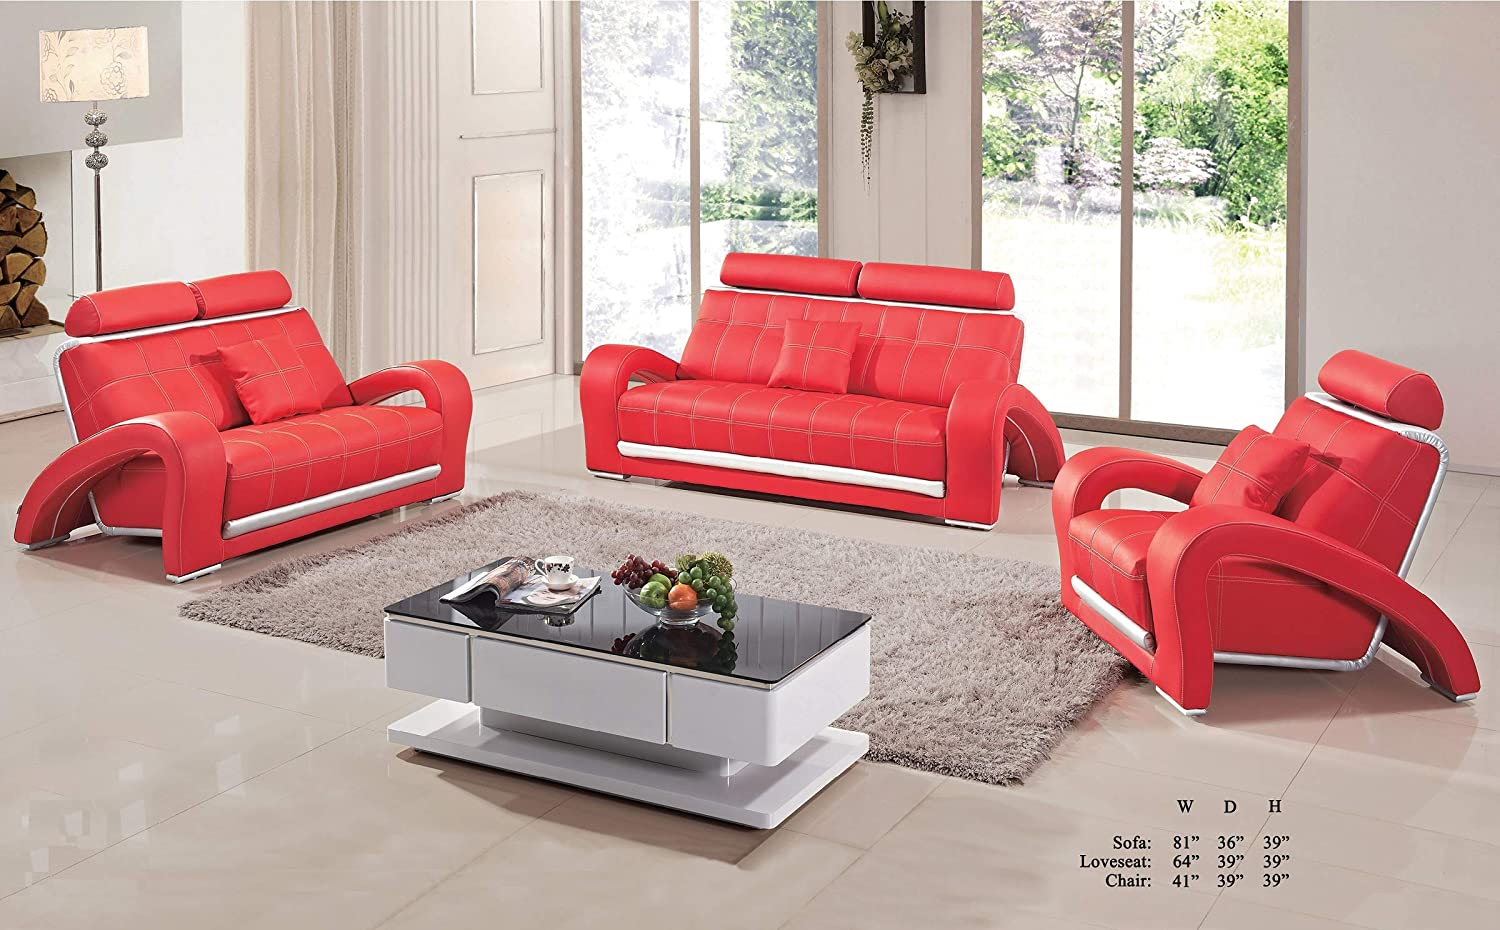 Amazon com esofastore living room furniture red silver bonded leather sofa loveseat chair adjustable headrest unique arms 3pc sofa set kitchen dining